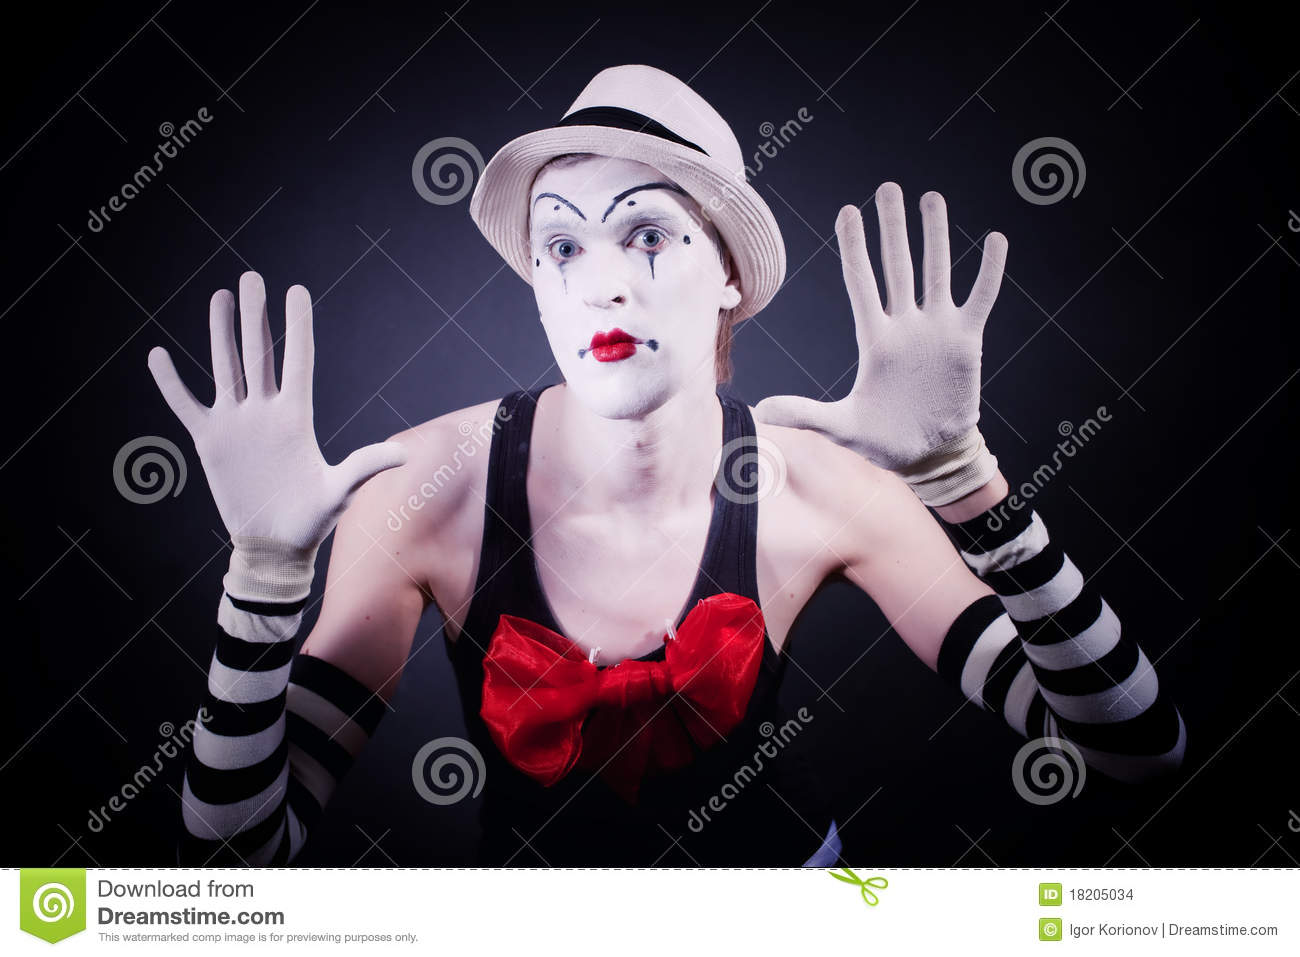 Mime with red bow